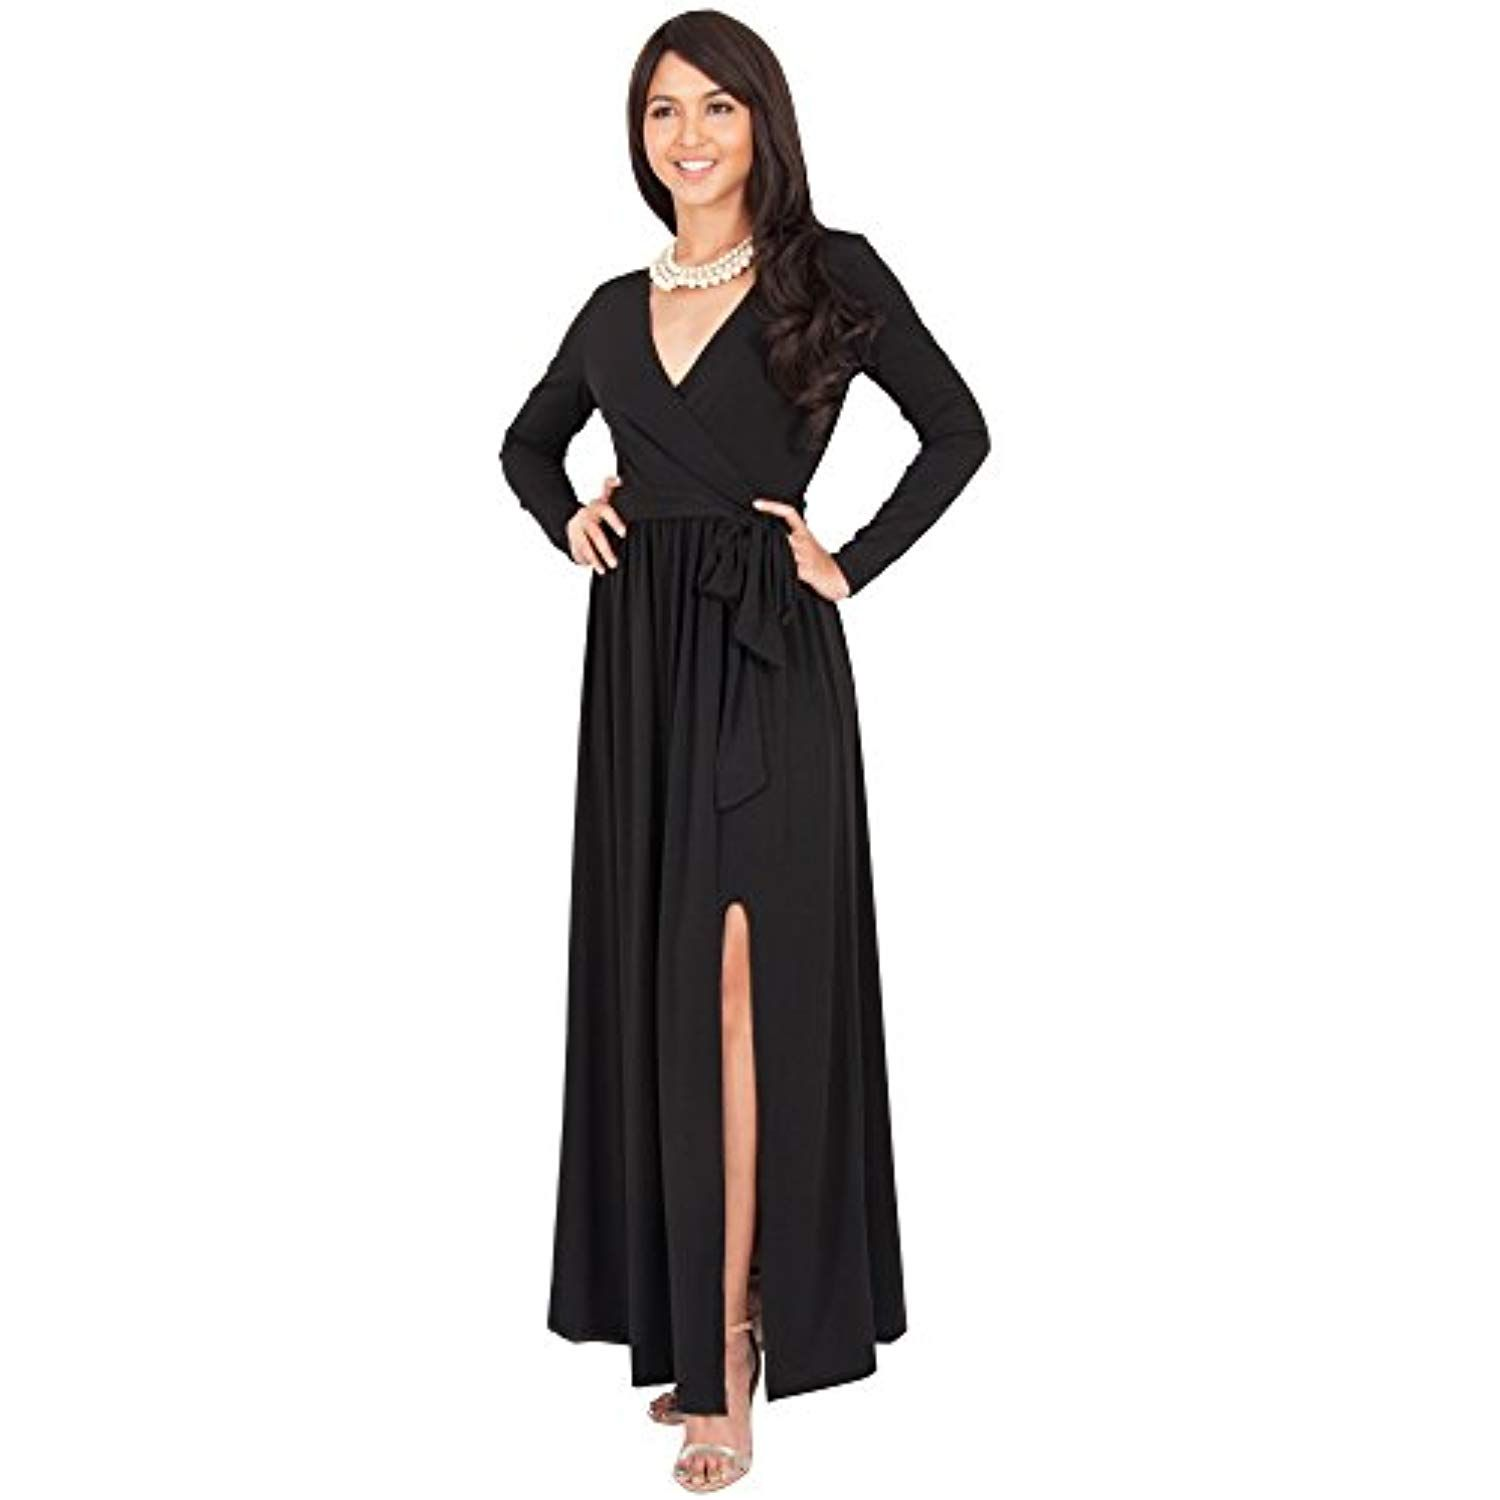 ac2a736b7b Womens Long Sleeve V-Neck Cross Over High Slit Cocktail Evening Gown Maxi  Dress -- More info could be found at the image url. (This is an affiliate  link)